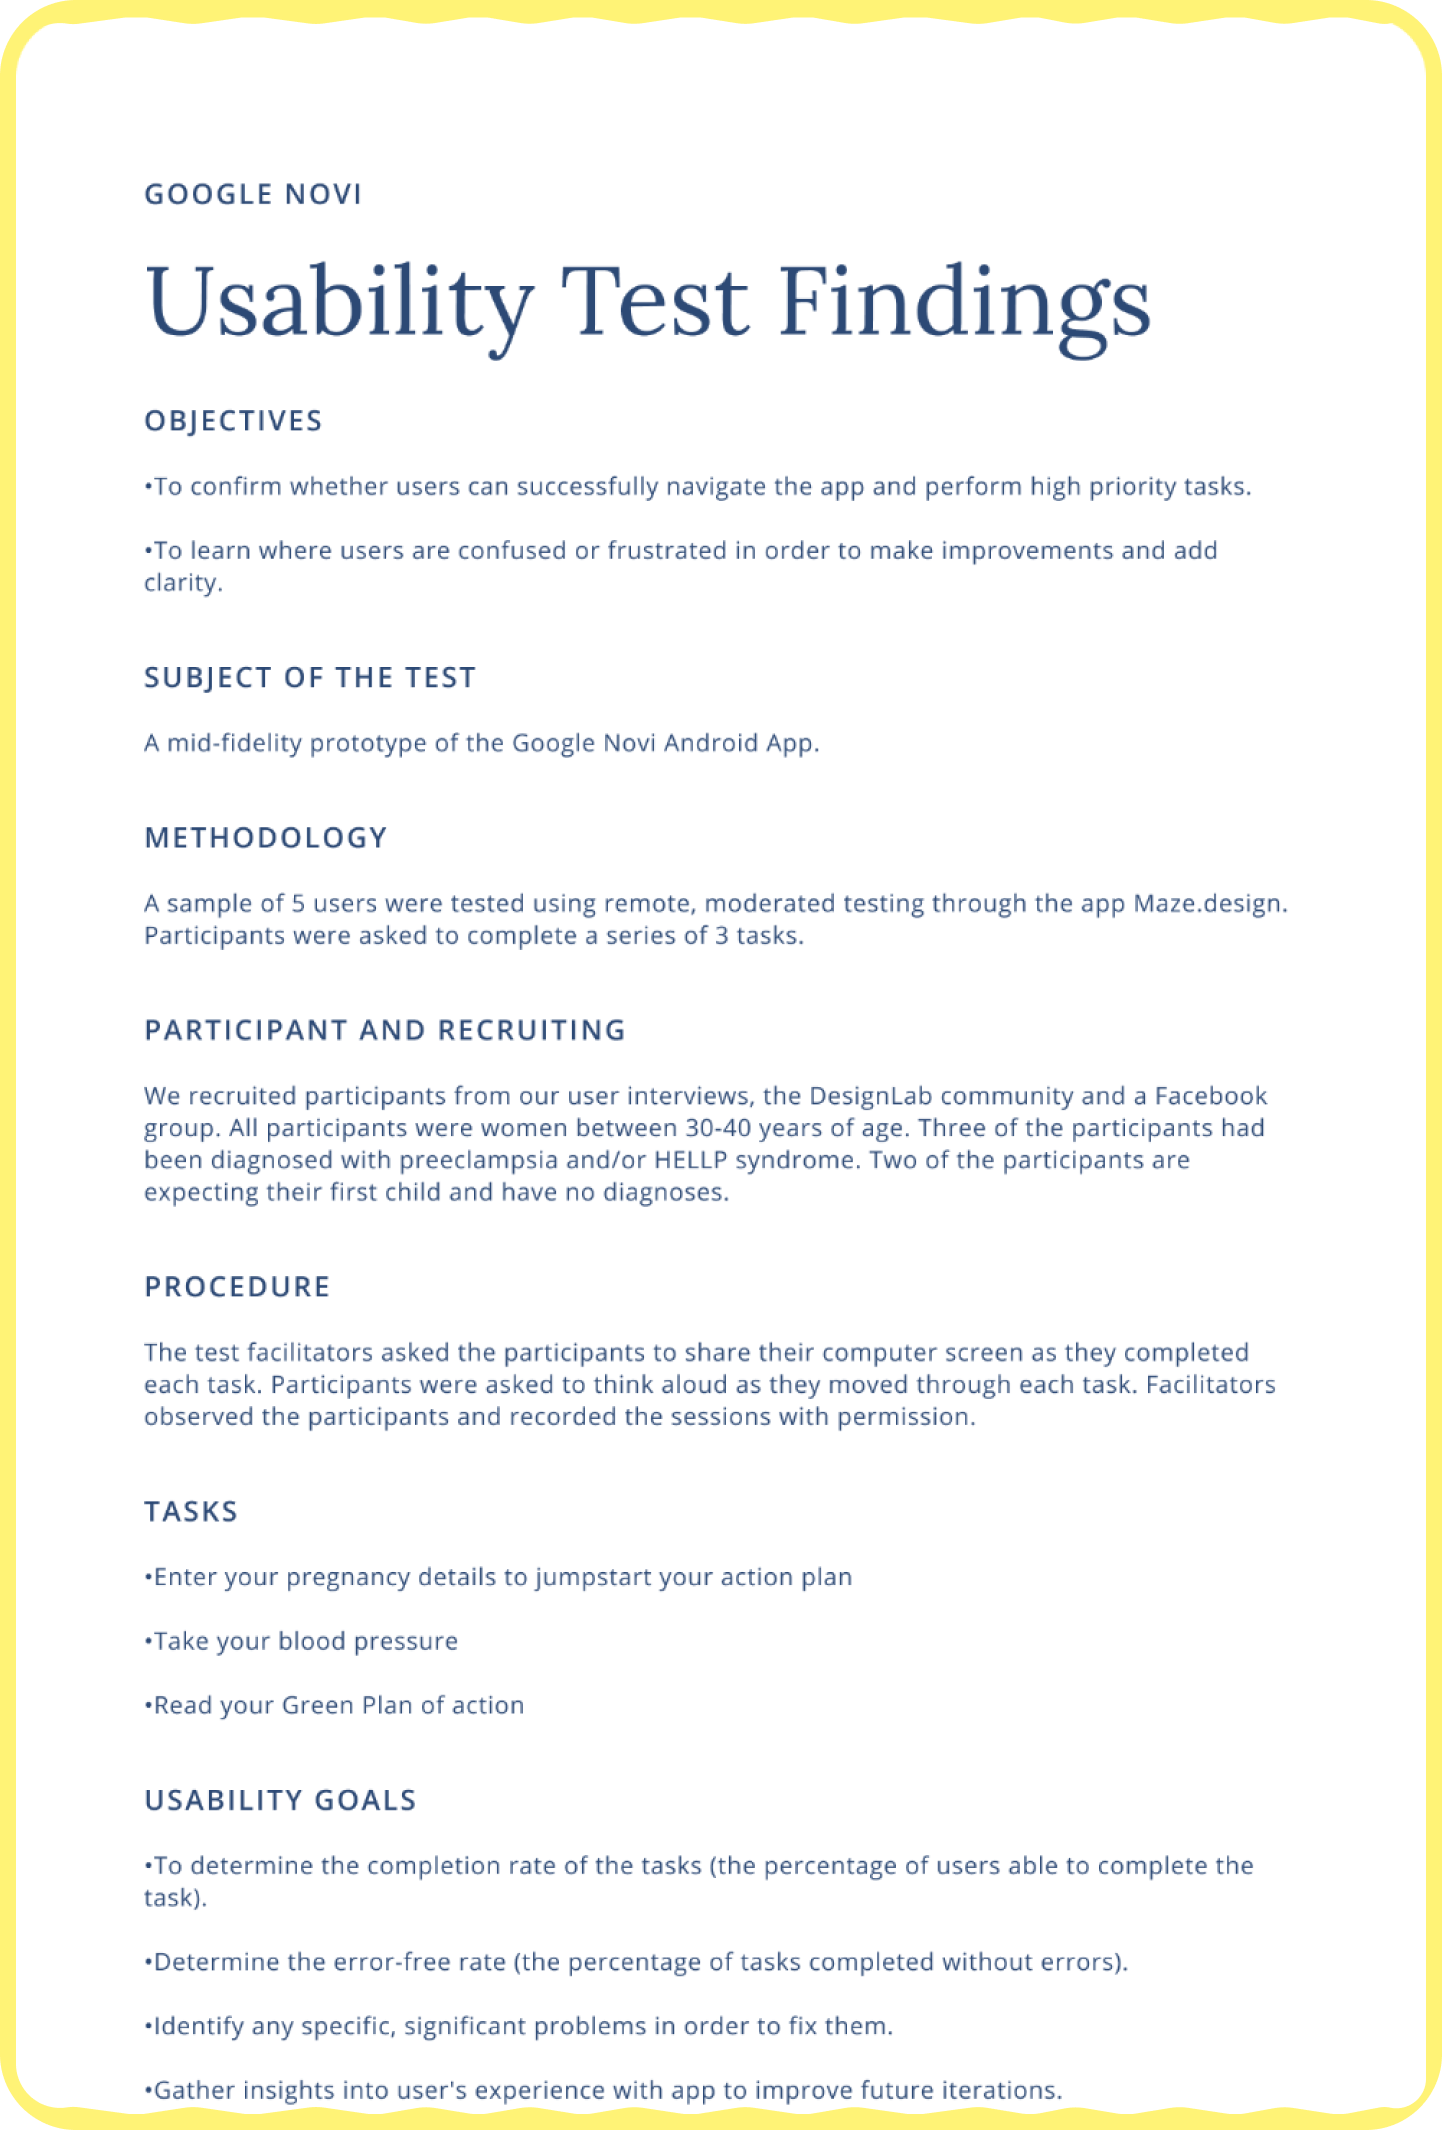 A partial image of a Usability Test Findings document.